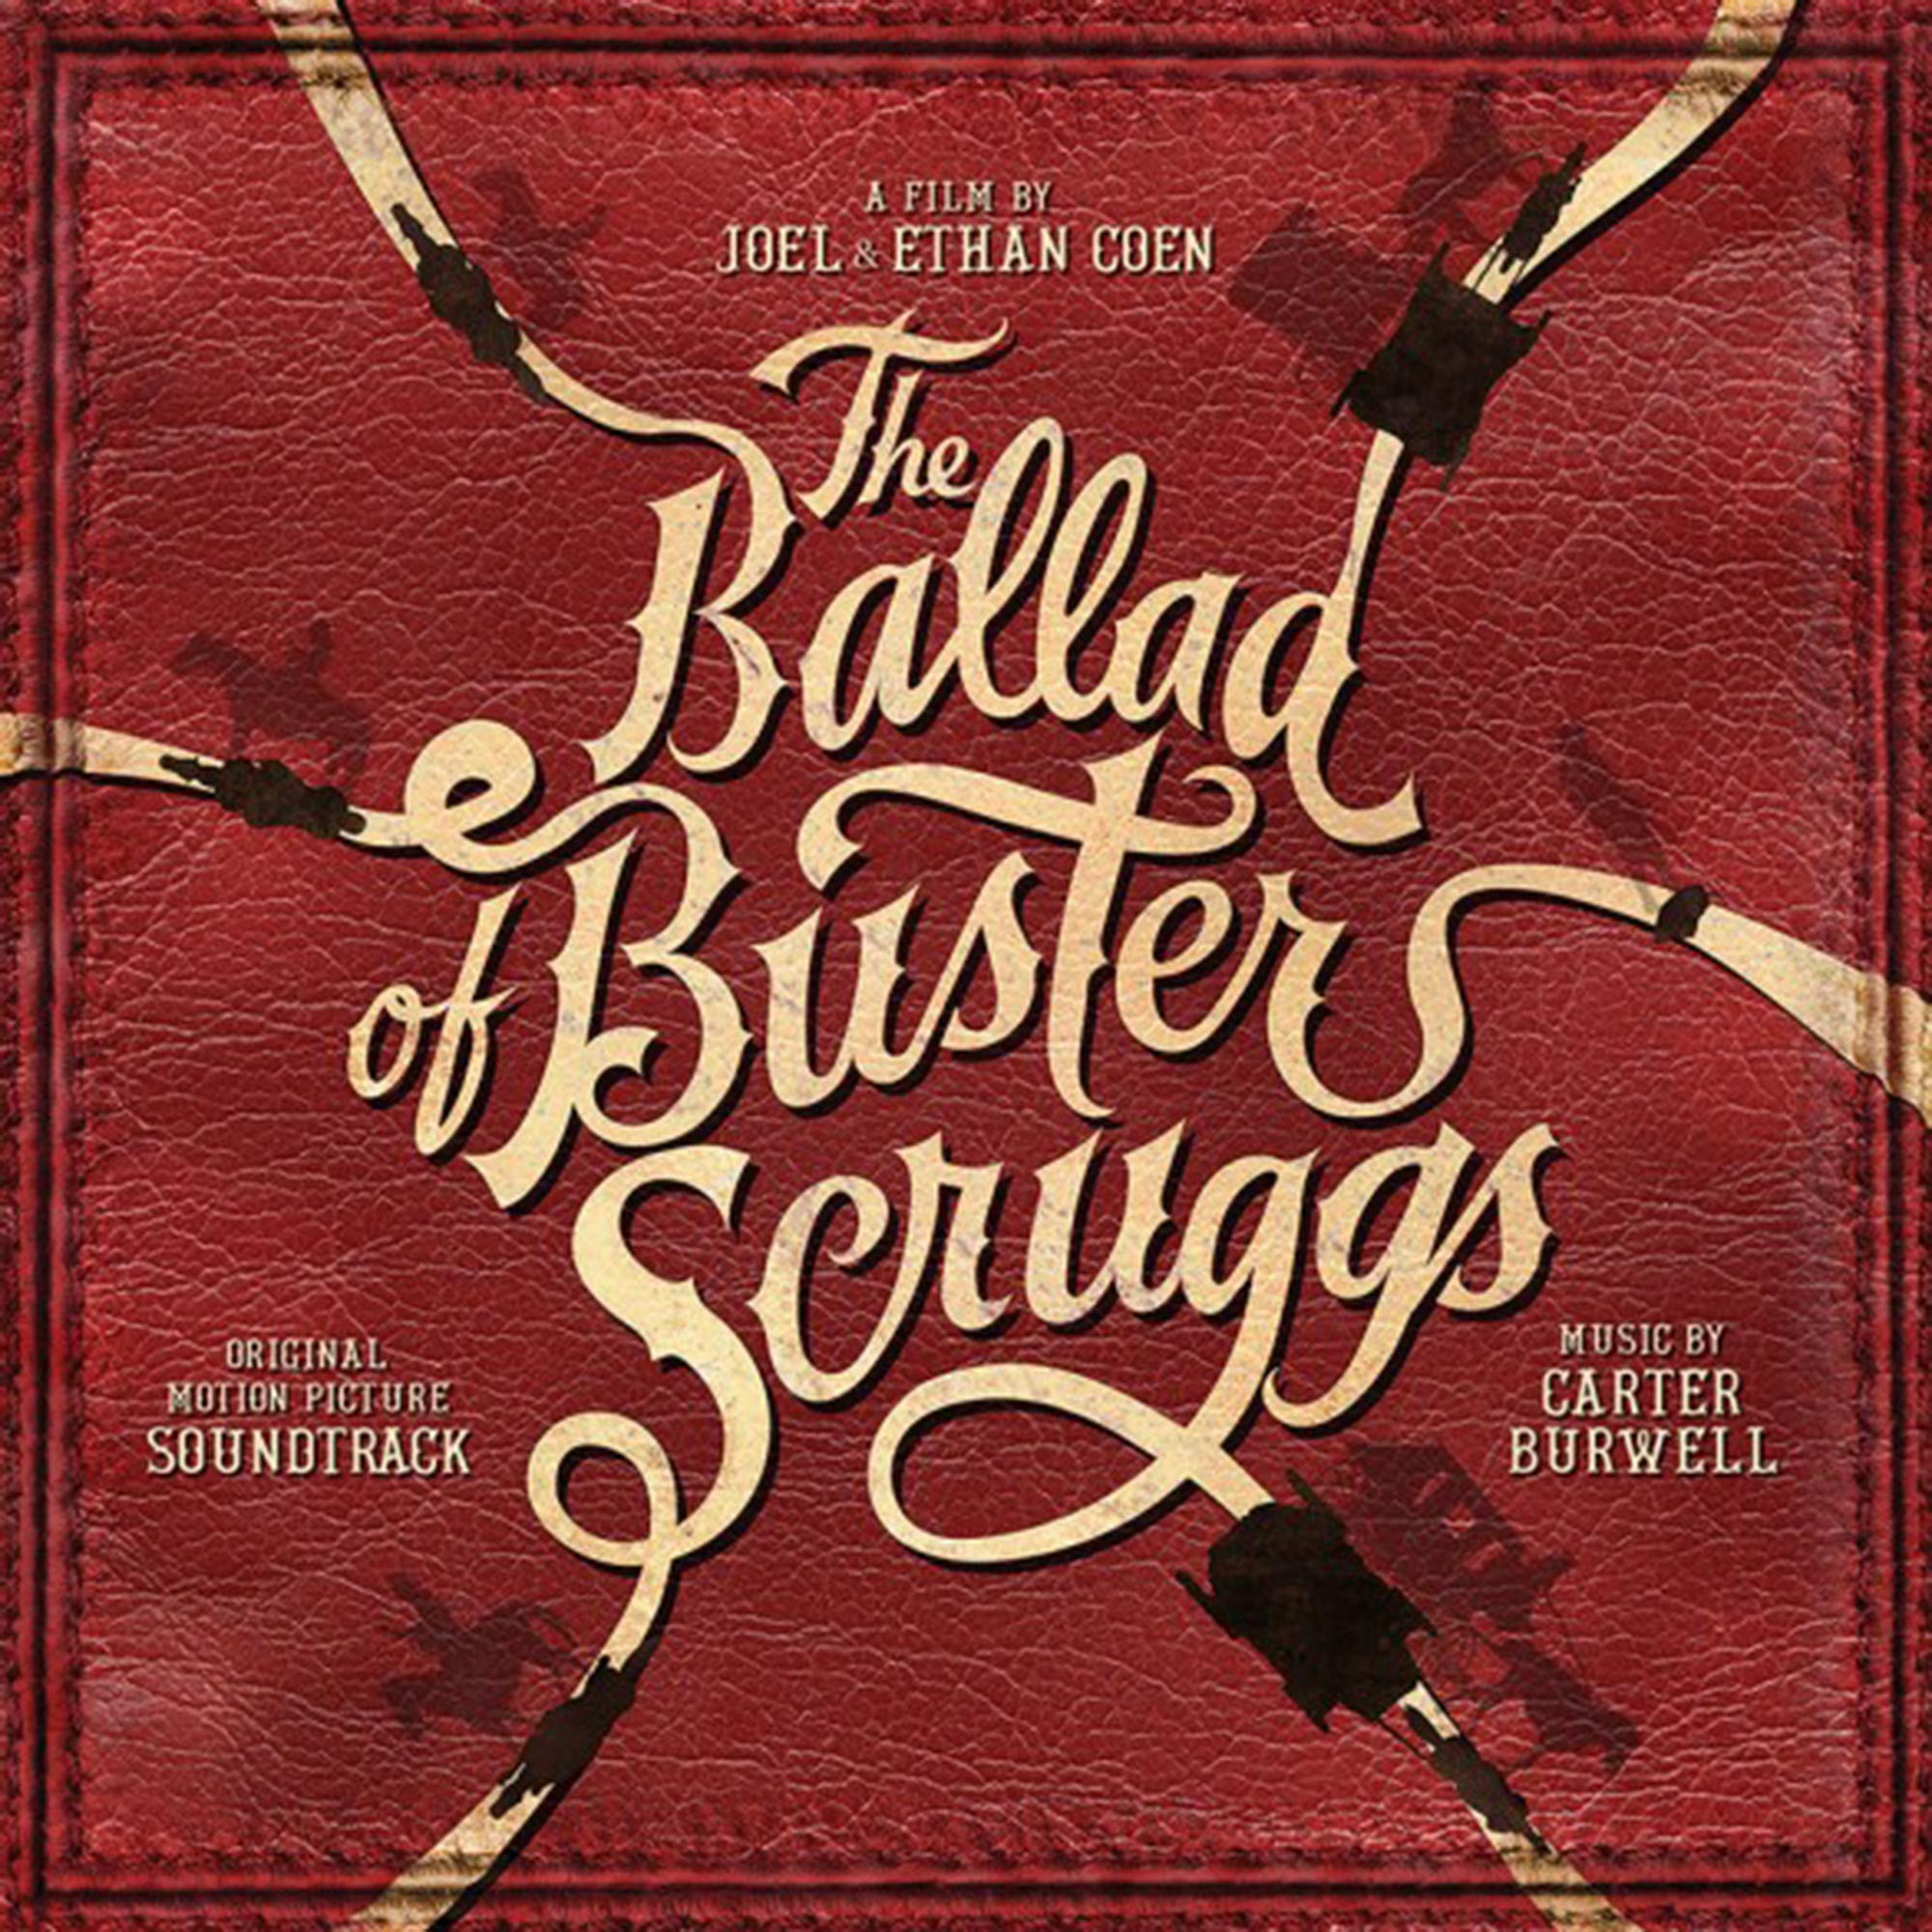 Pop Disciple Podcast Carter Burwell Composer Score Film Music The Ballad of Buster Scruggs Coen Brothers